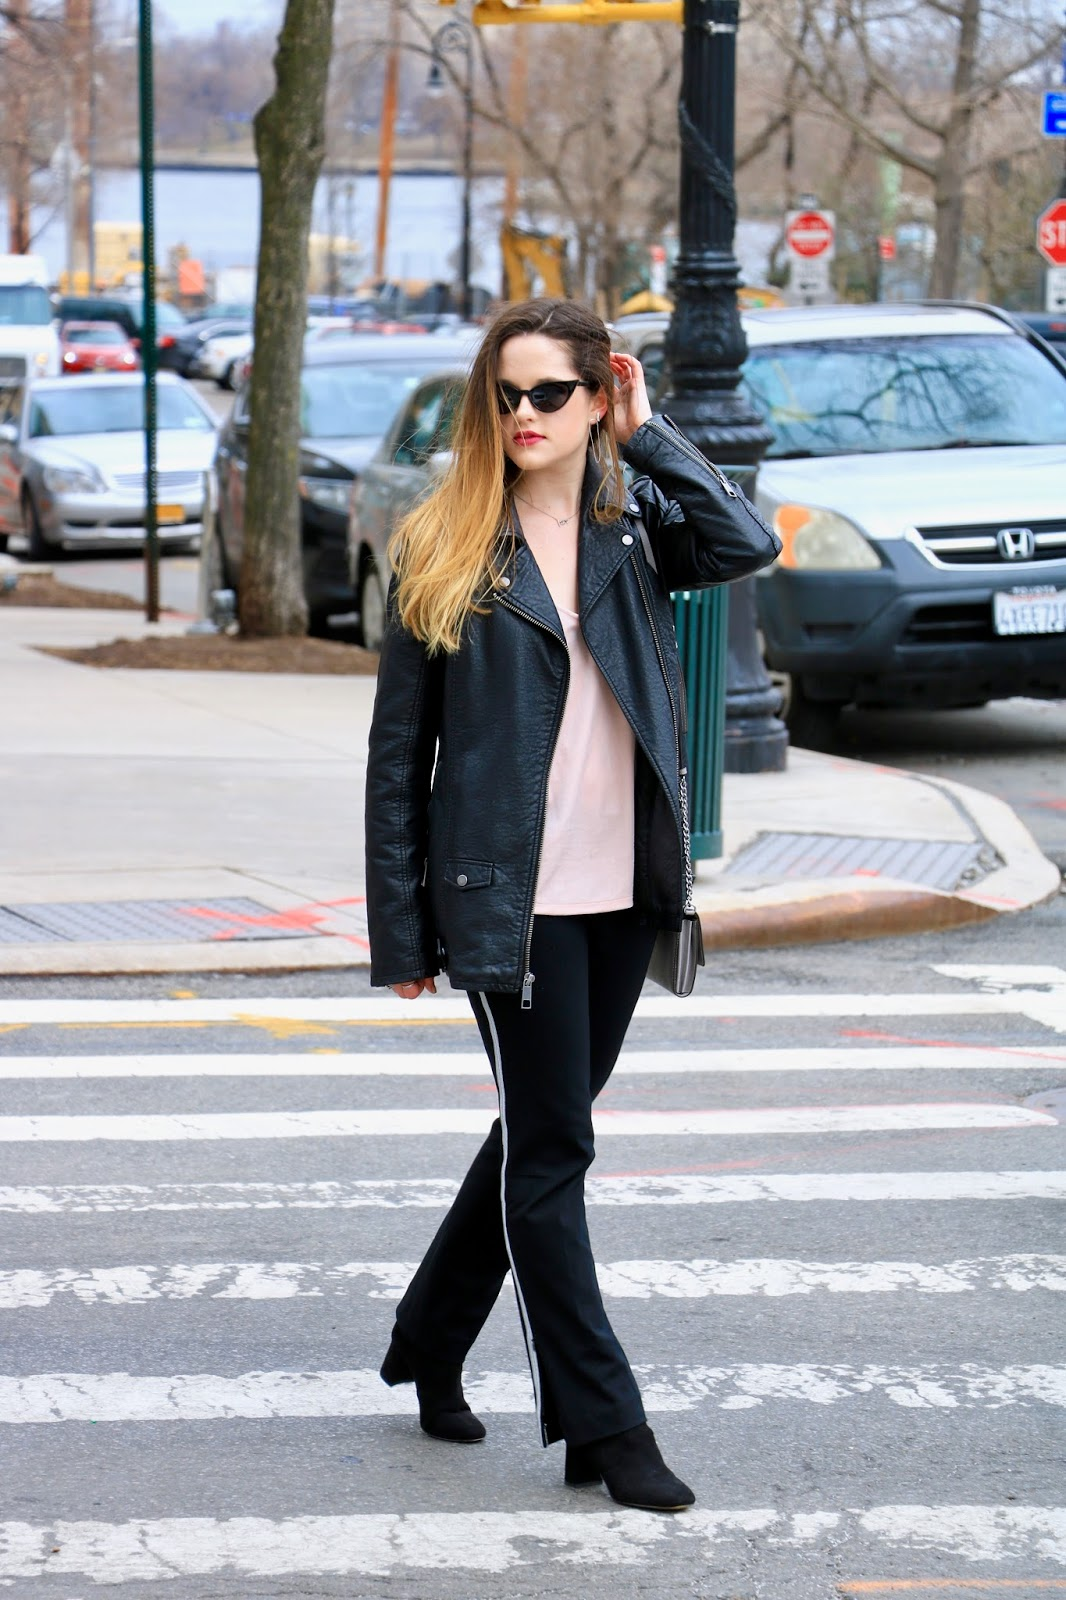 Nyc fashion blogger Kathleen Harper showing how to wear track pants